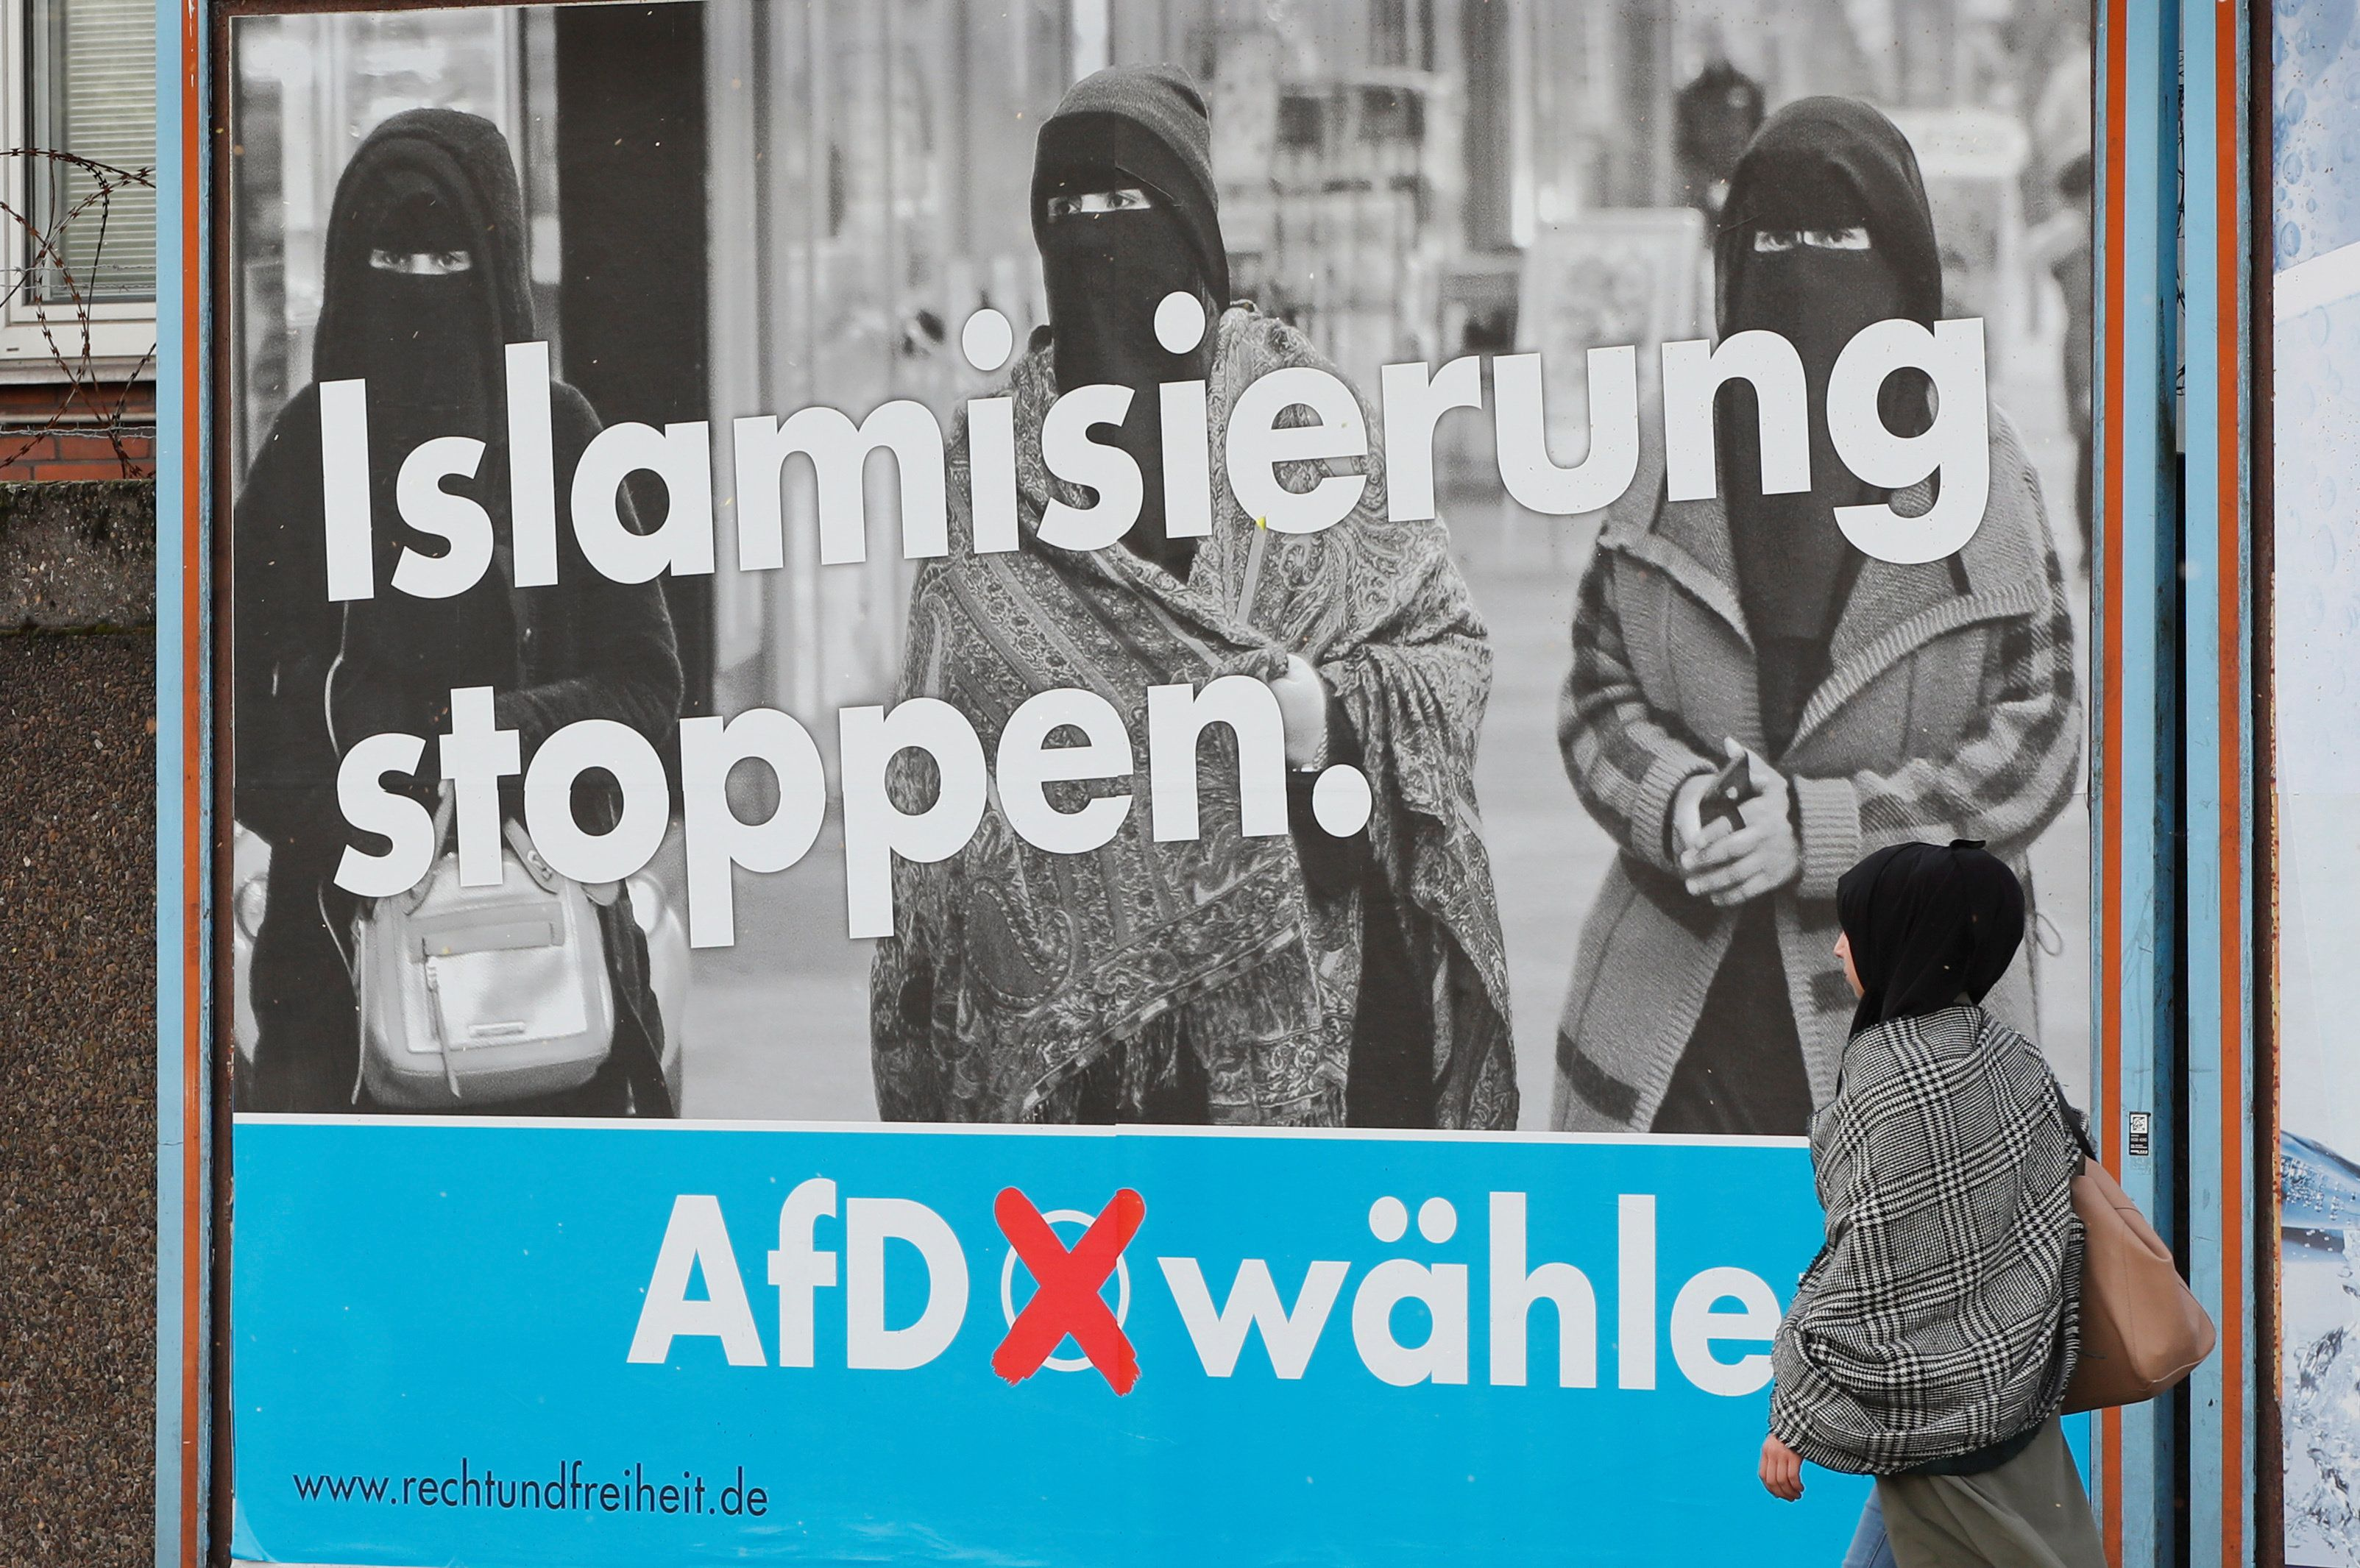 A woman with a headscarf walks past an election campaign poster of the anti-immigration party Alternative fuer Deutschland AfD, in Marxloh, a suburb of Duisburg which local media said is populated mostly with people of Turkish migrant background, Germany September 13, 2017. REUTERS/Wolfgang Rattay